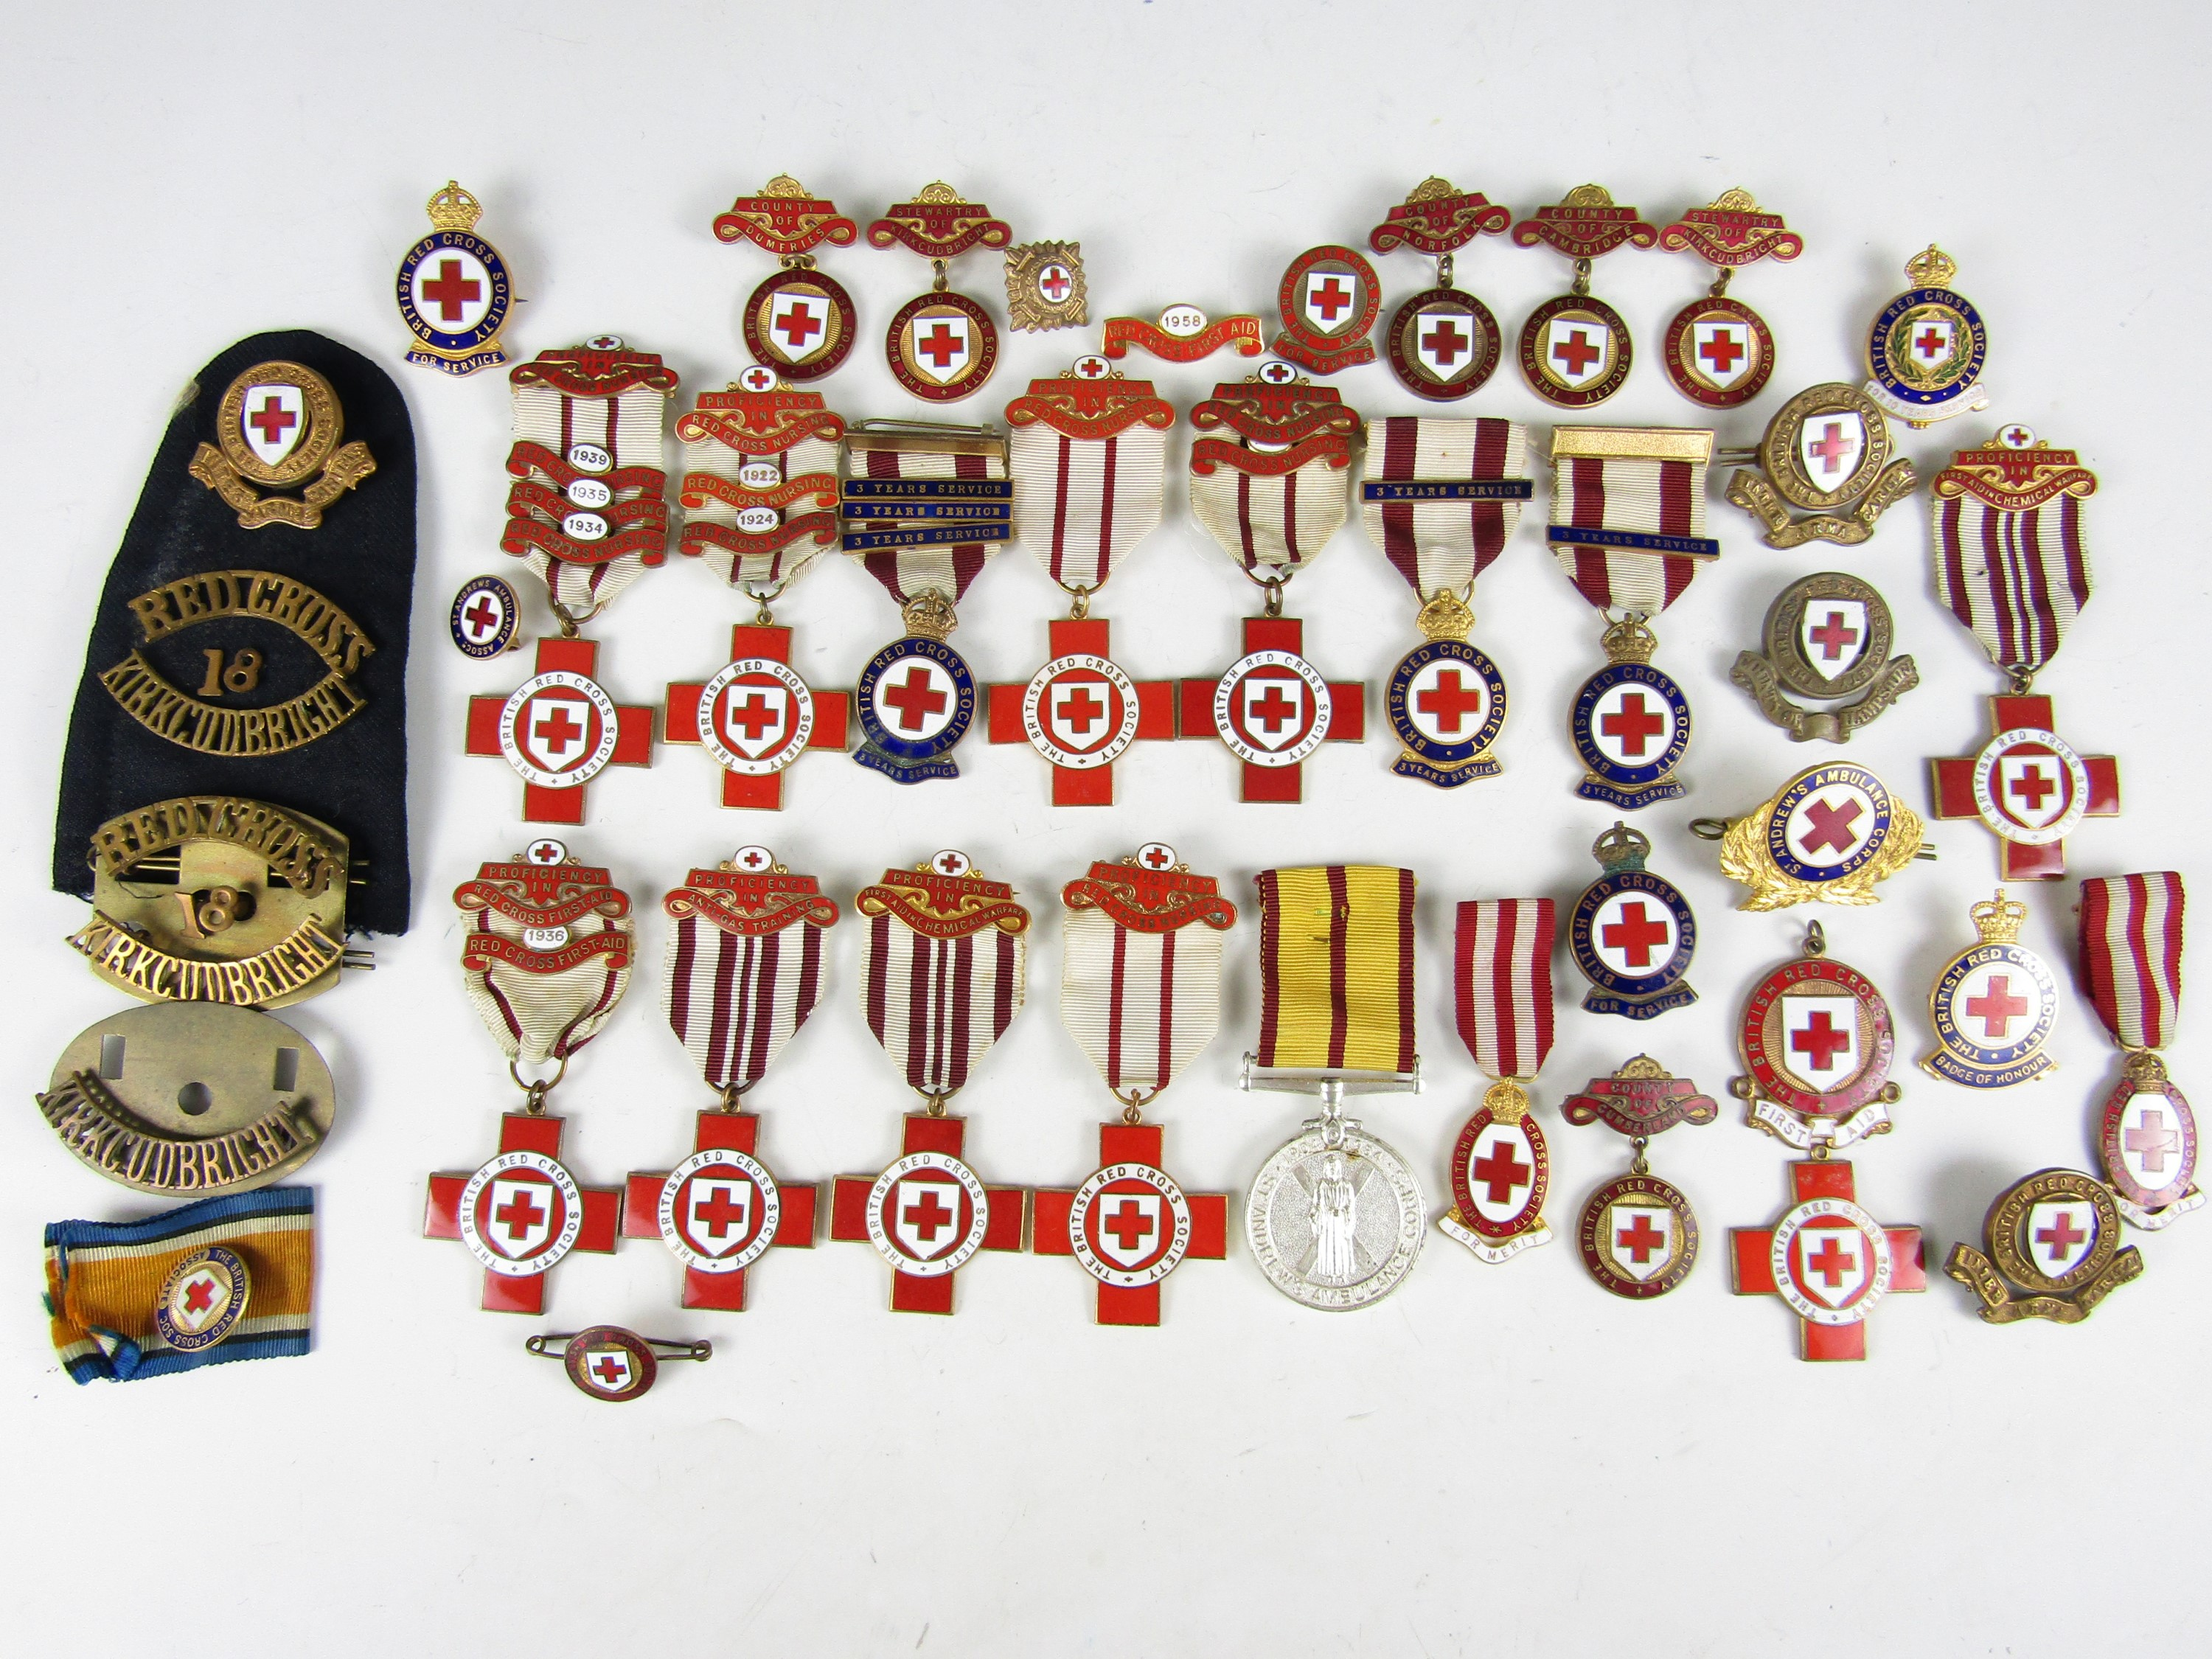 Lot 59 - A large quantity of Red Cross and similar medals and insignia